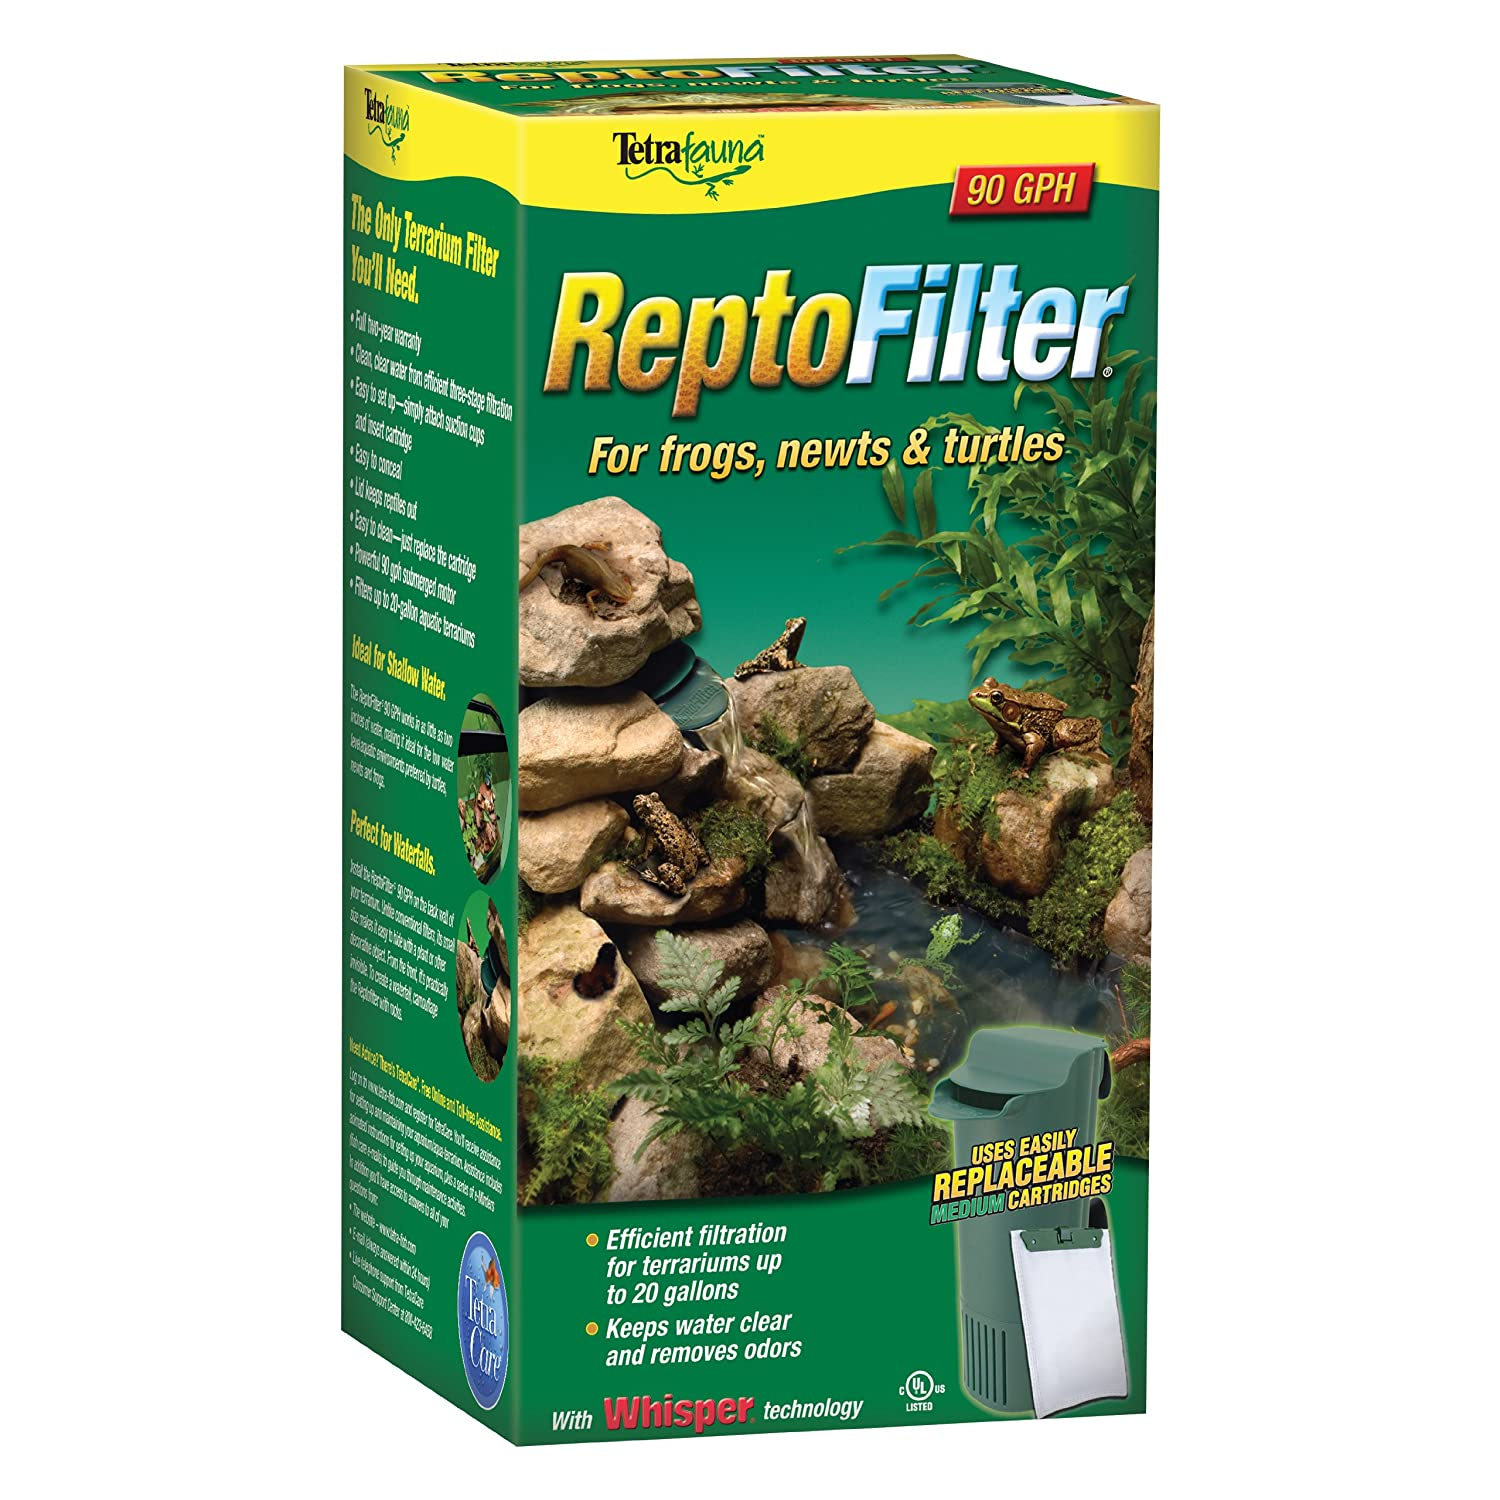 Tetra 26038 ReptoFilter for Terrariums up to 50 Gallons, 125 GPH